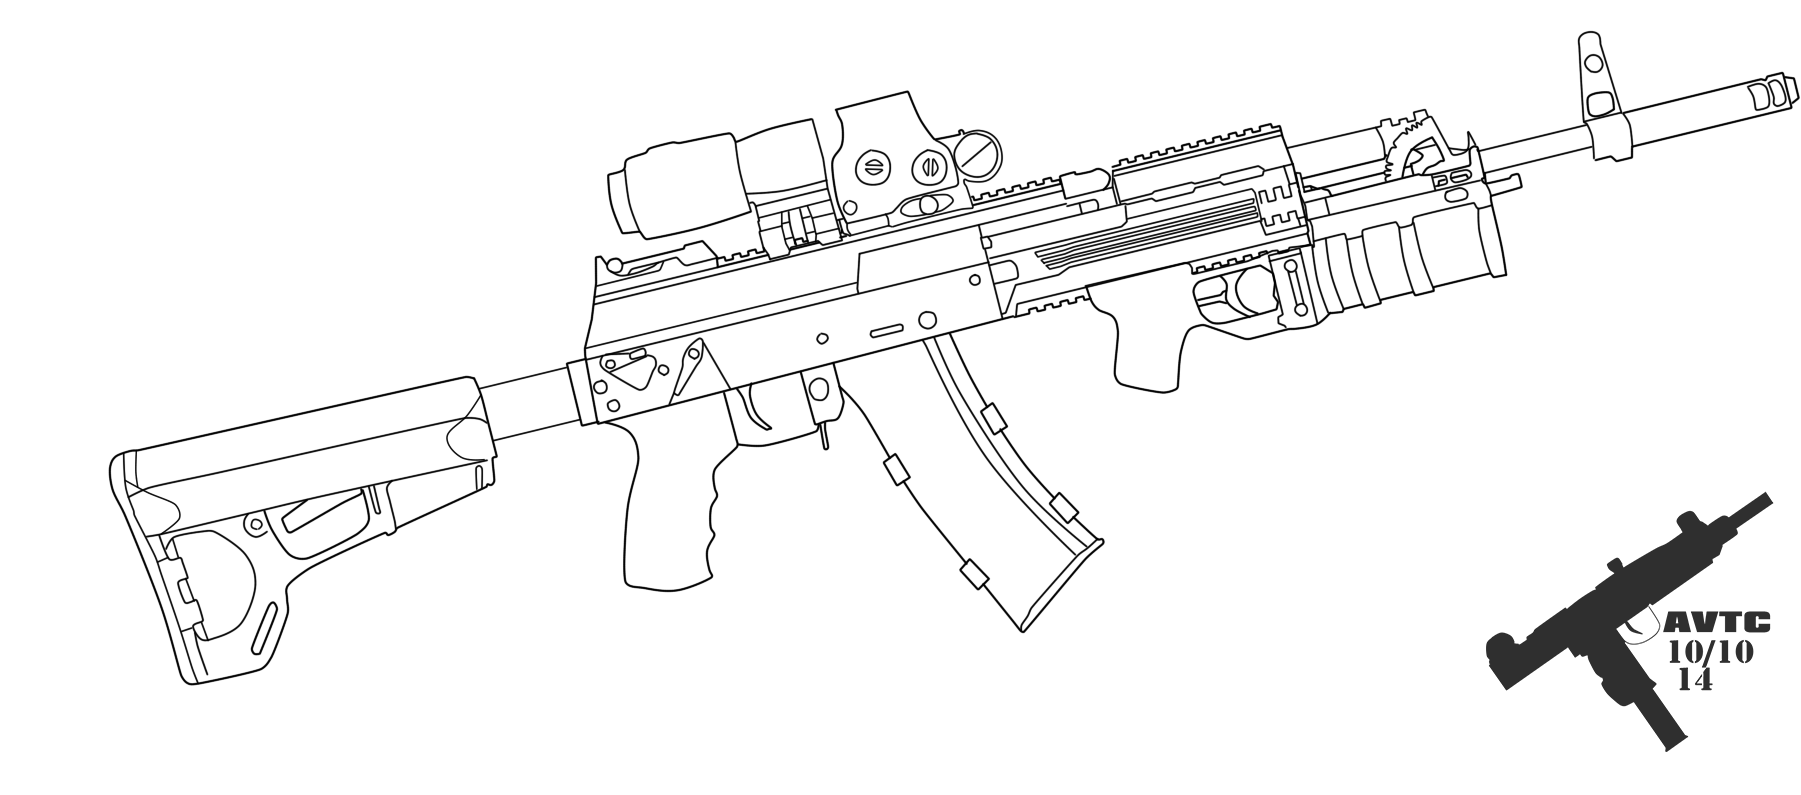 Ak drawing weapon. Tactical by kaymanovite on